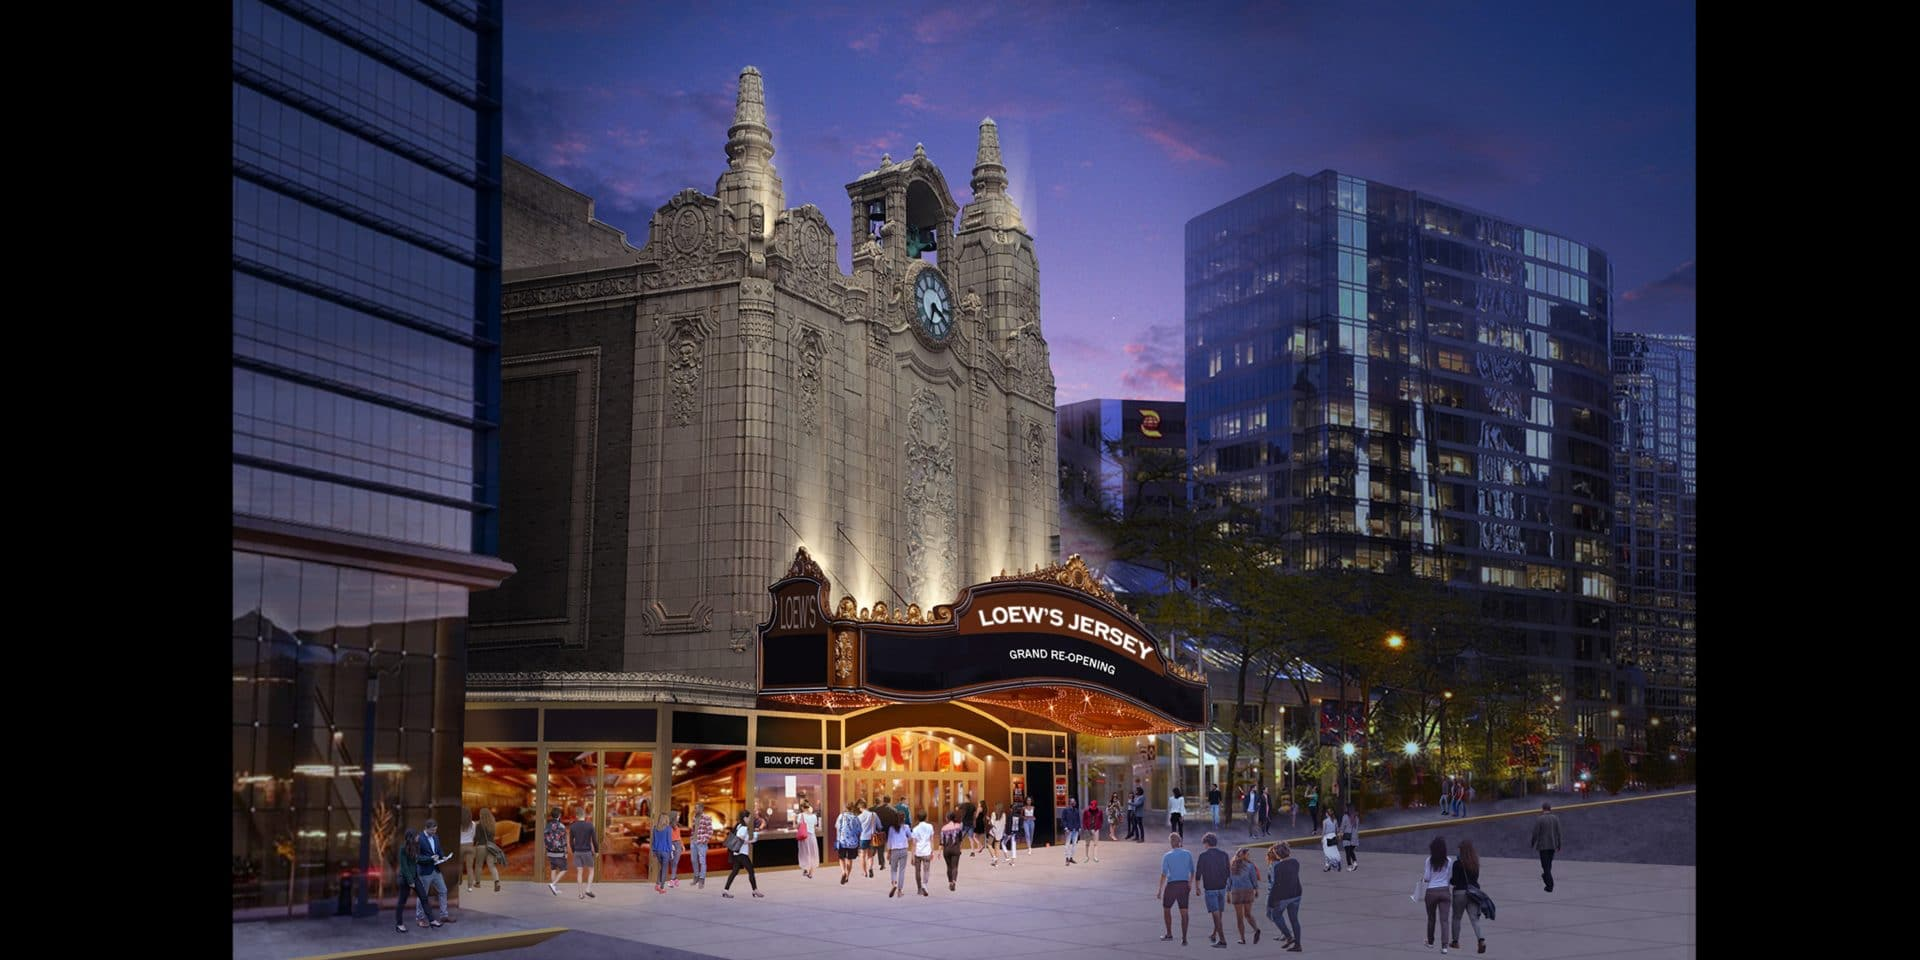 NHL Team's Affiliate Takes on Theater Project